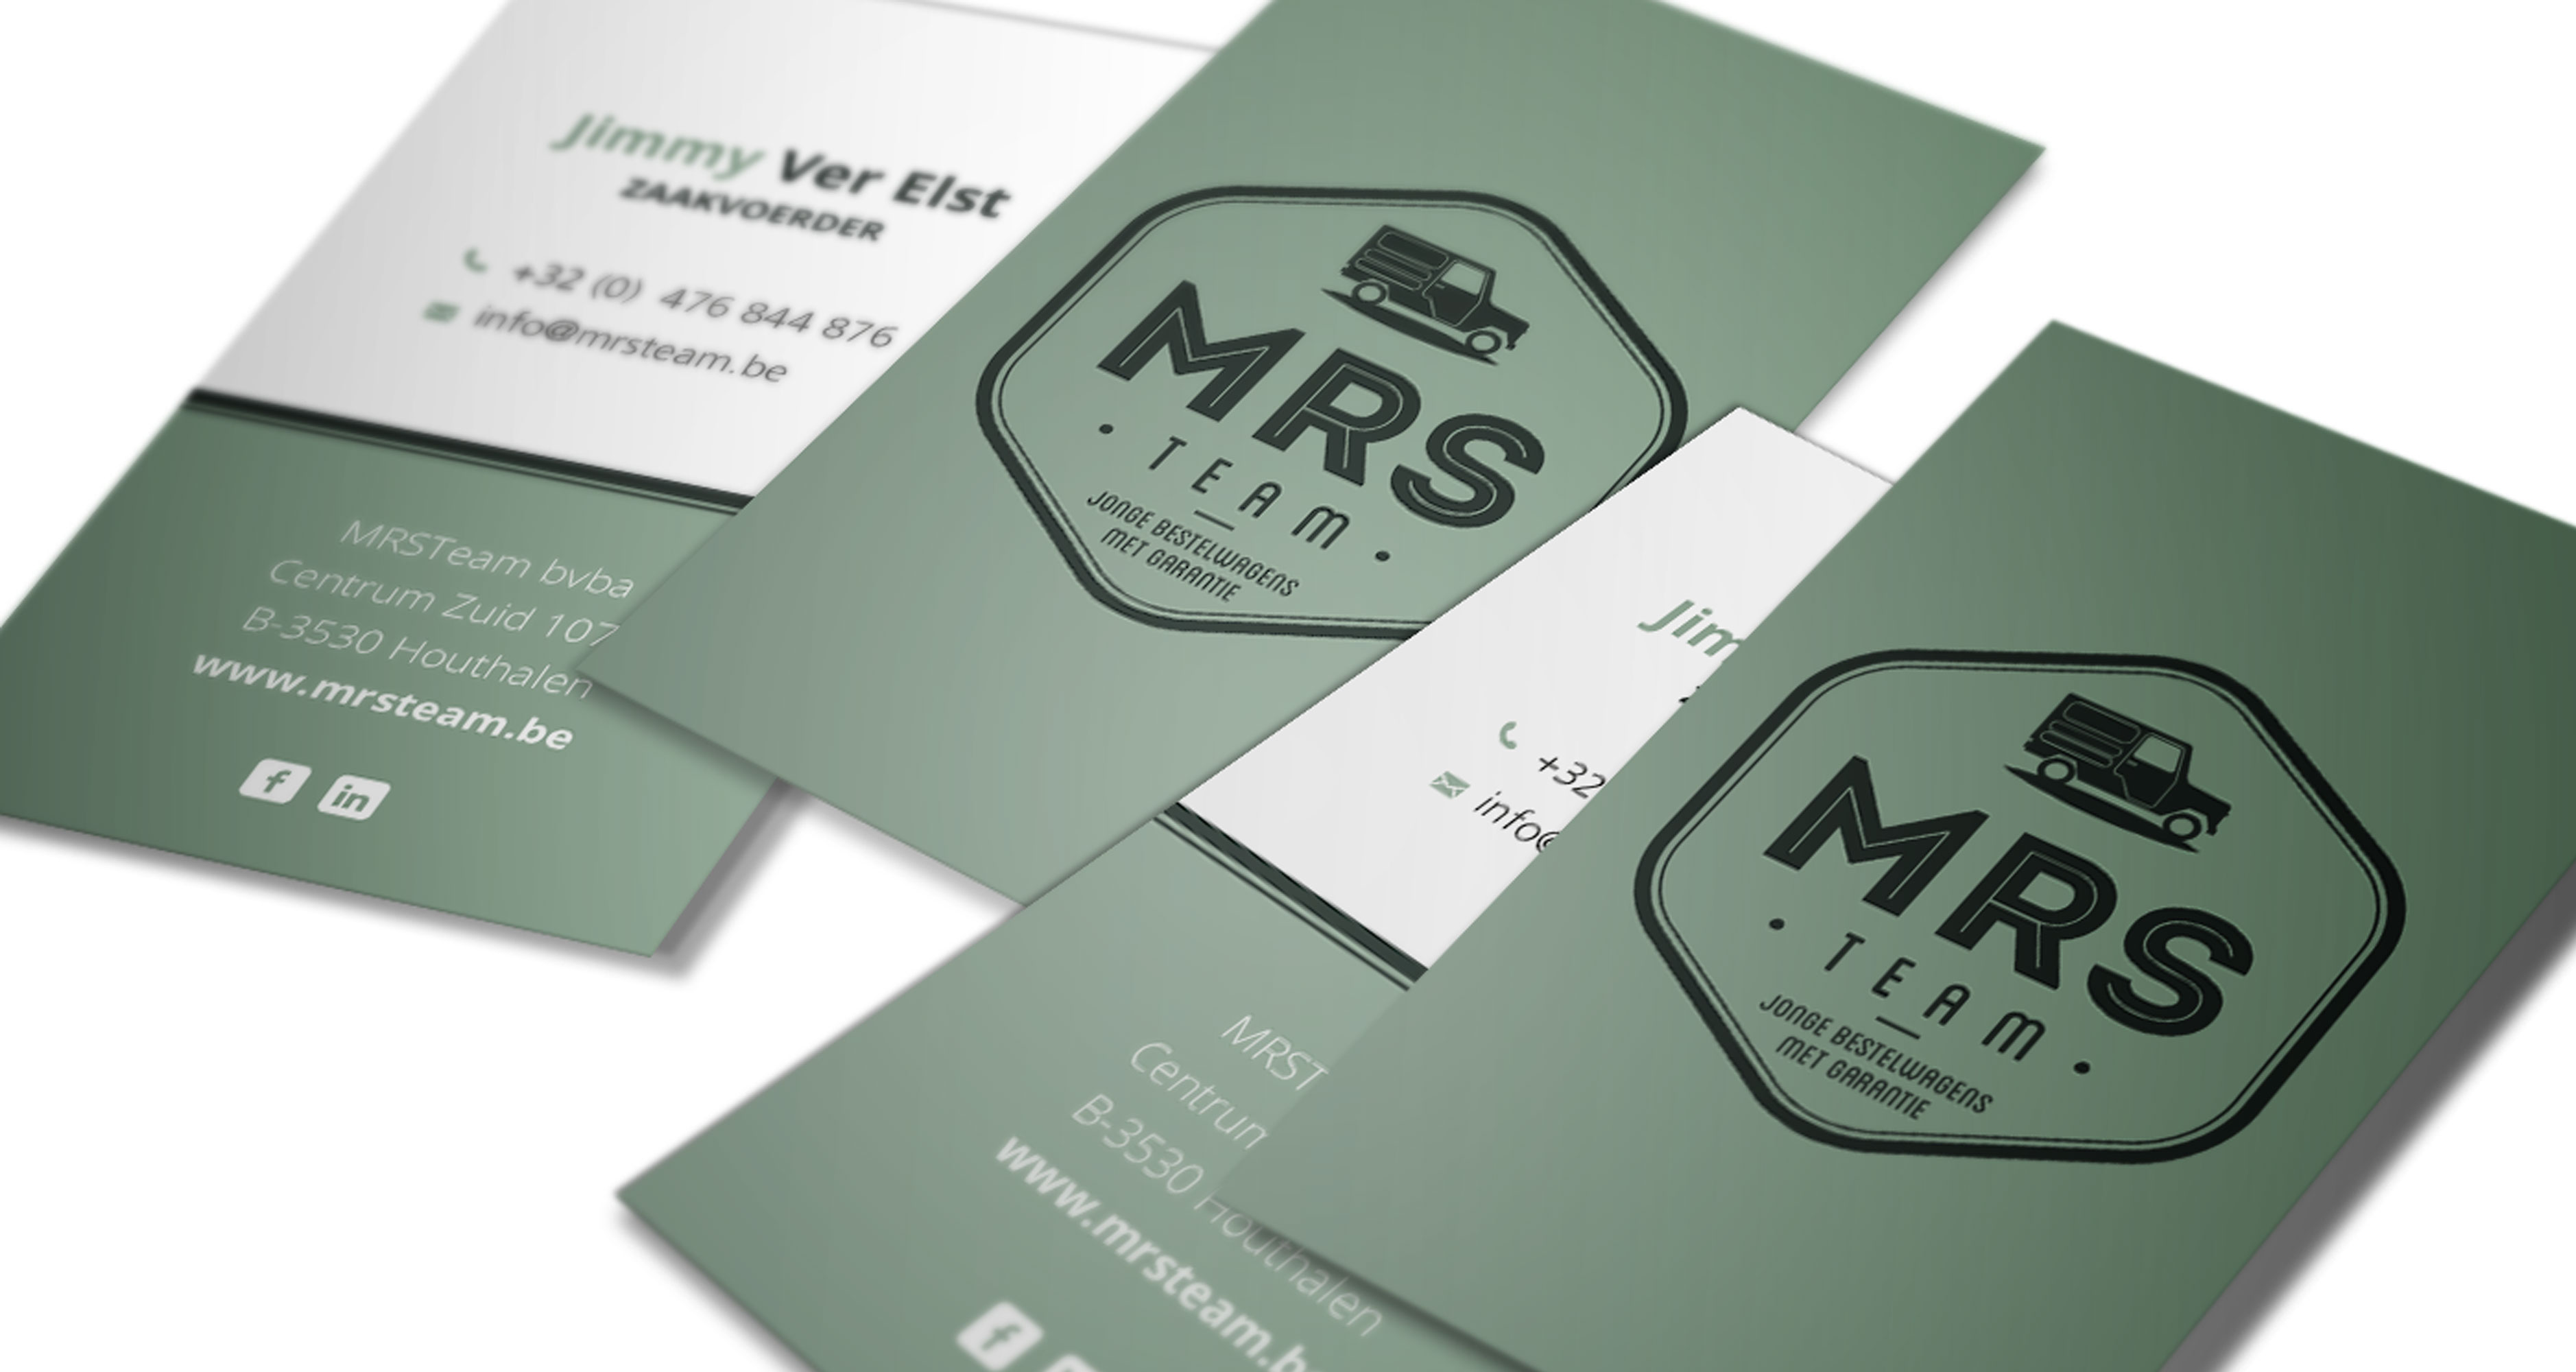 MRS-team website design